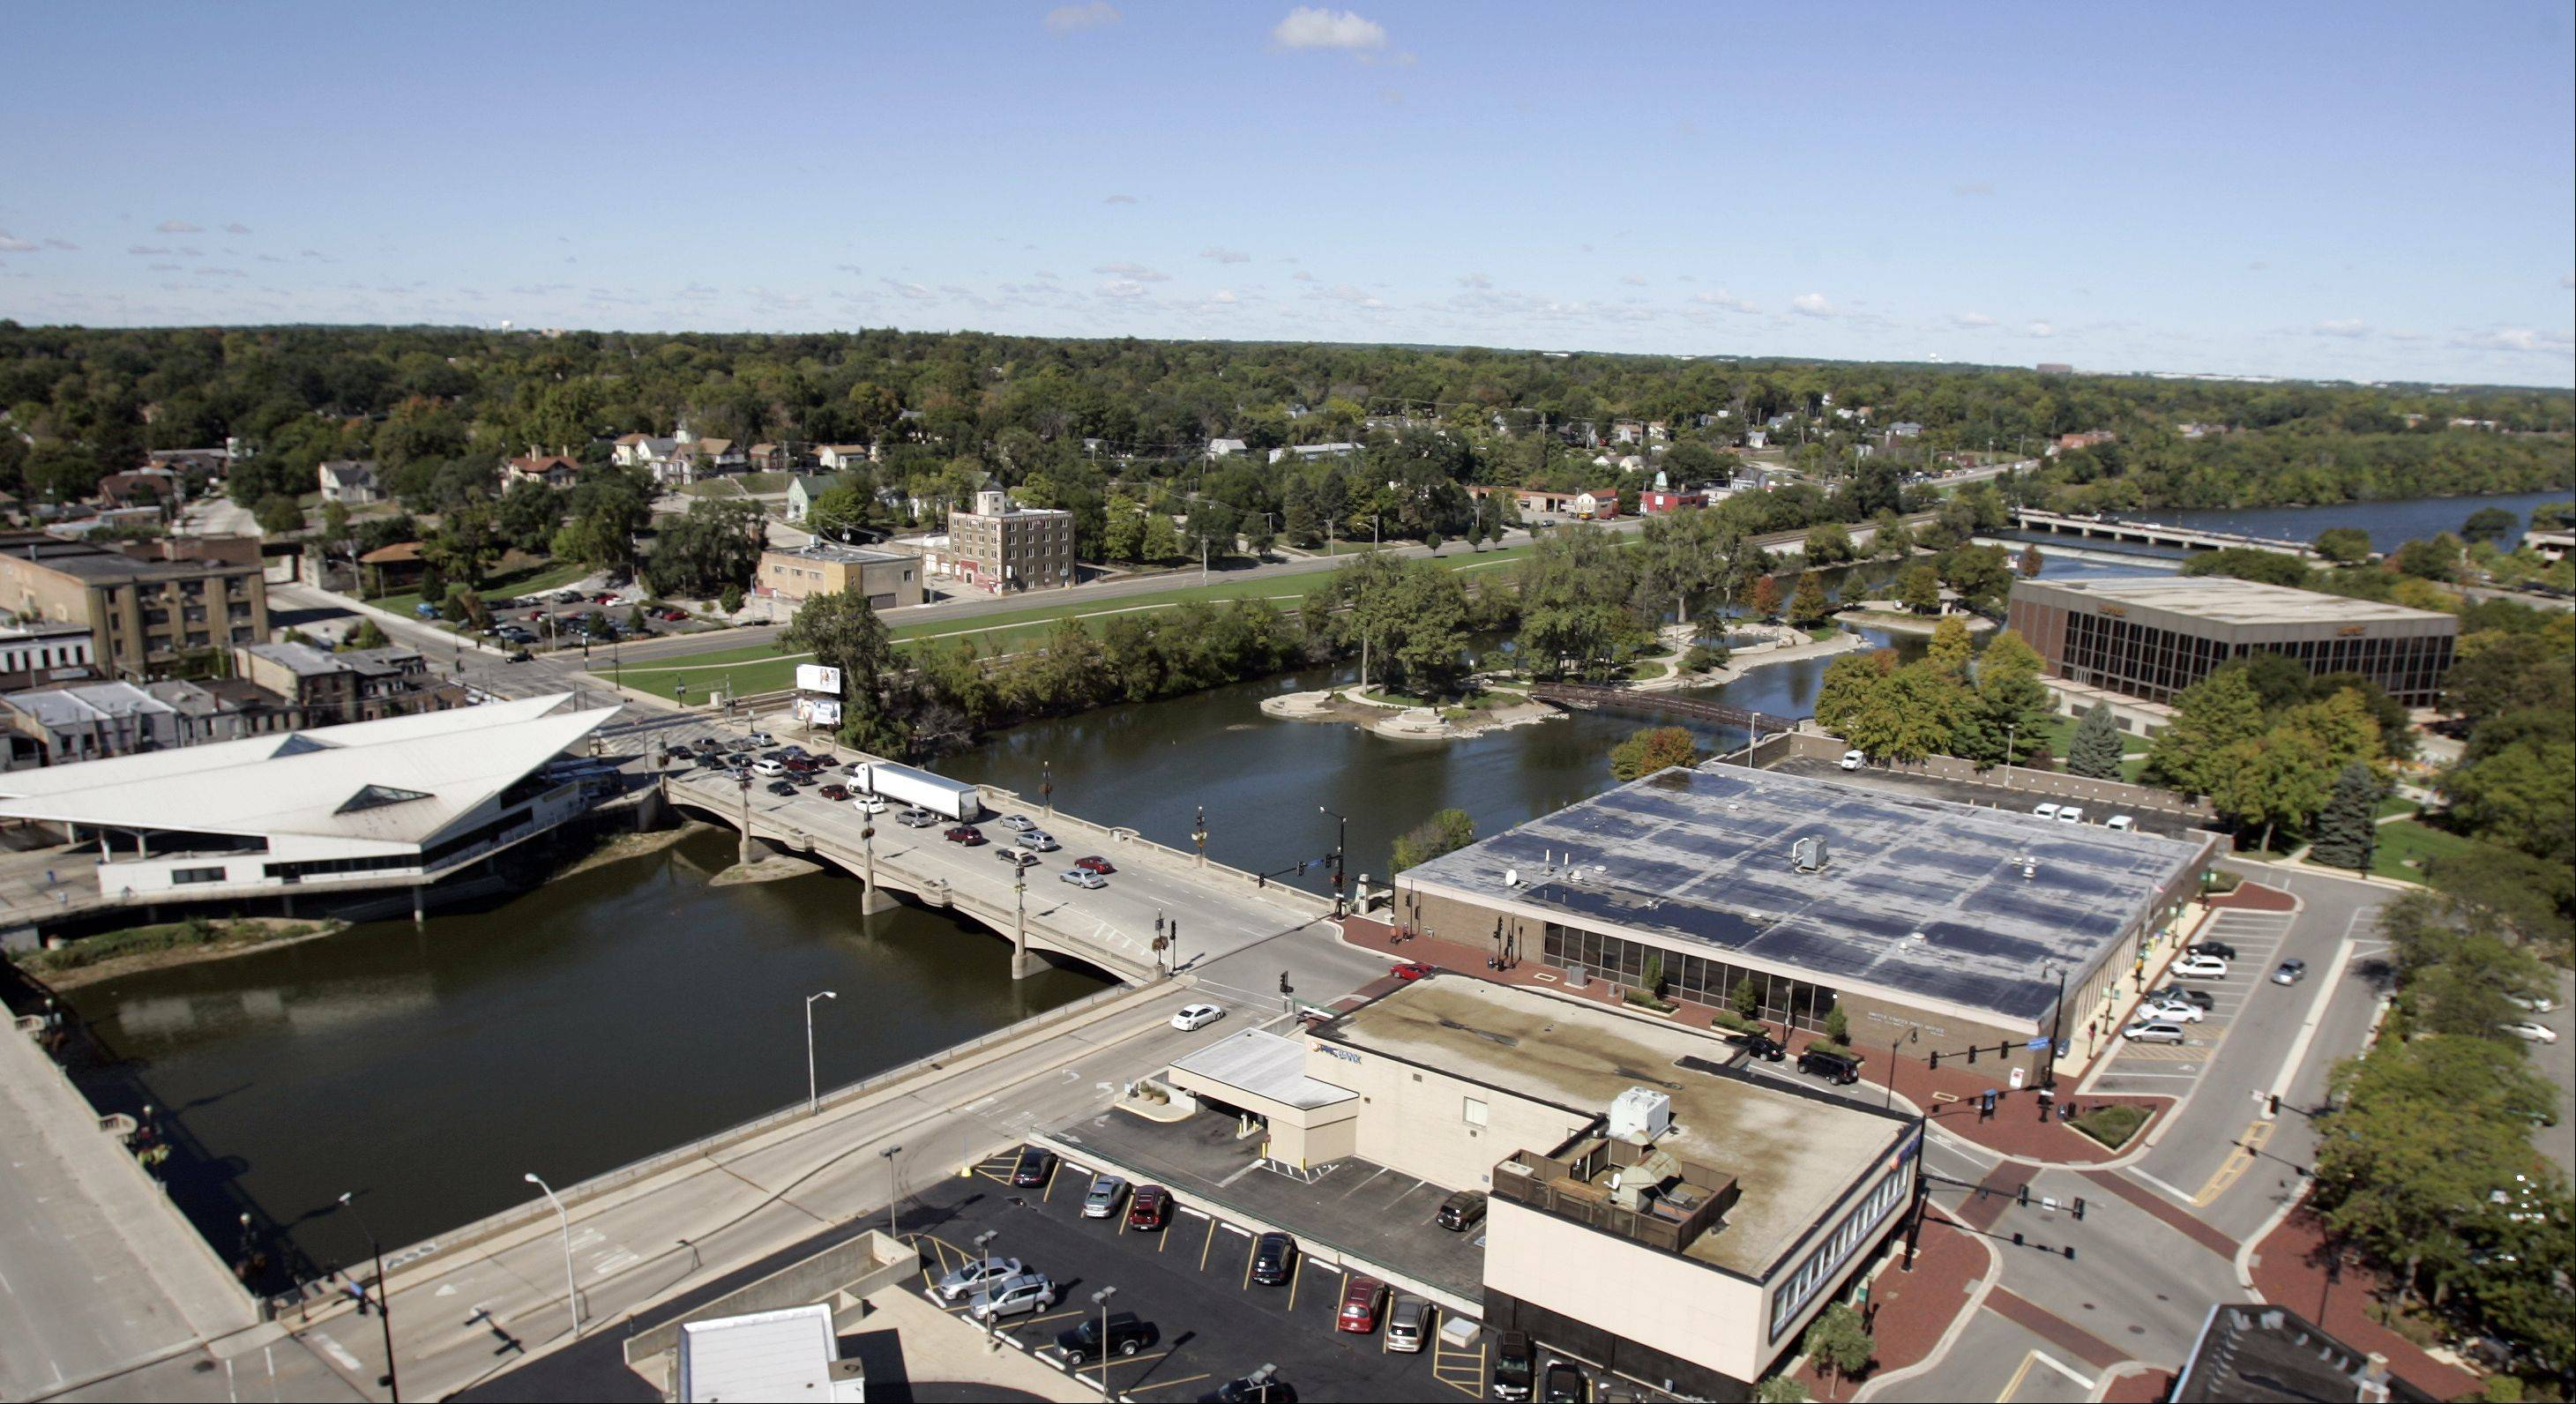 Looking north from the Tower Building in downtown Elgin, you can see the Hemmens Cultural Center on the top right, and Walton Island in the middle of the Fox River.